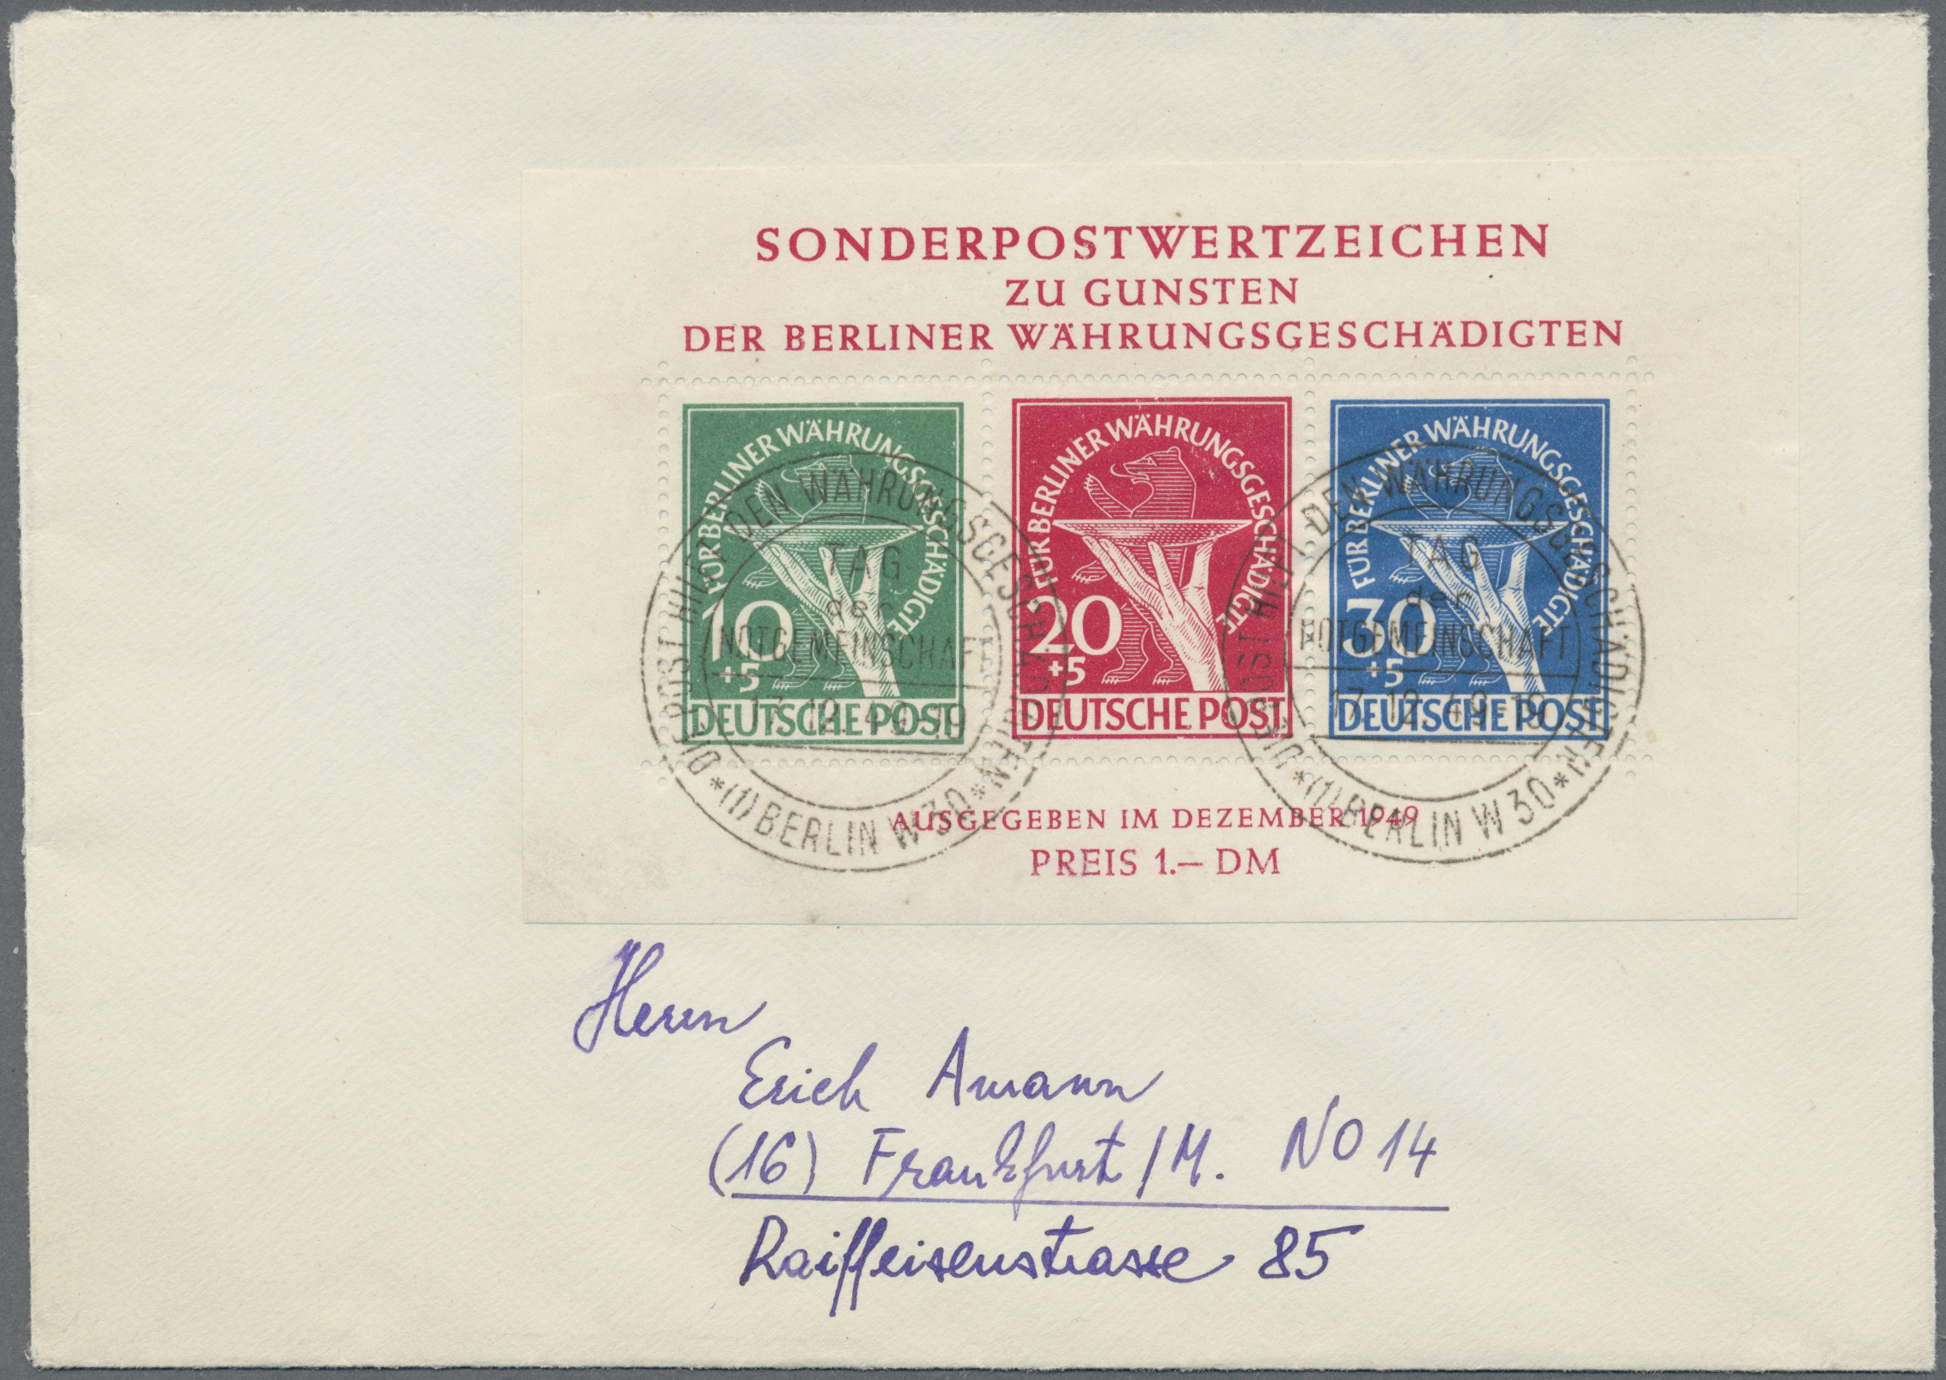 Lot 38087 - bundesrepublik und berlin  -  Auktionshaus Christoph Gärtner GmbH & Co. KG Collections Germany,  Collections Supplement, Surprise boxes #39 Day 7